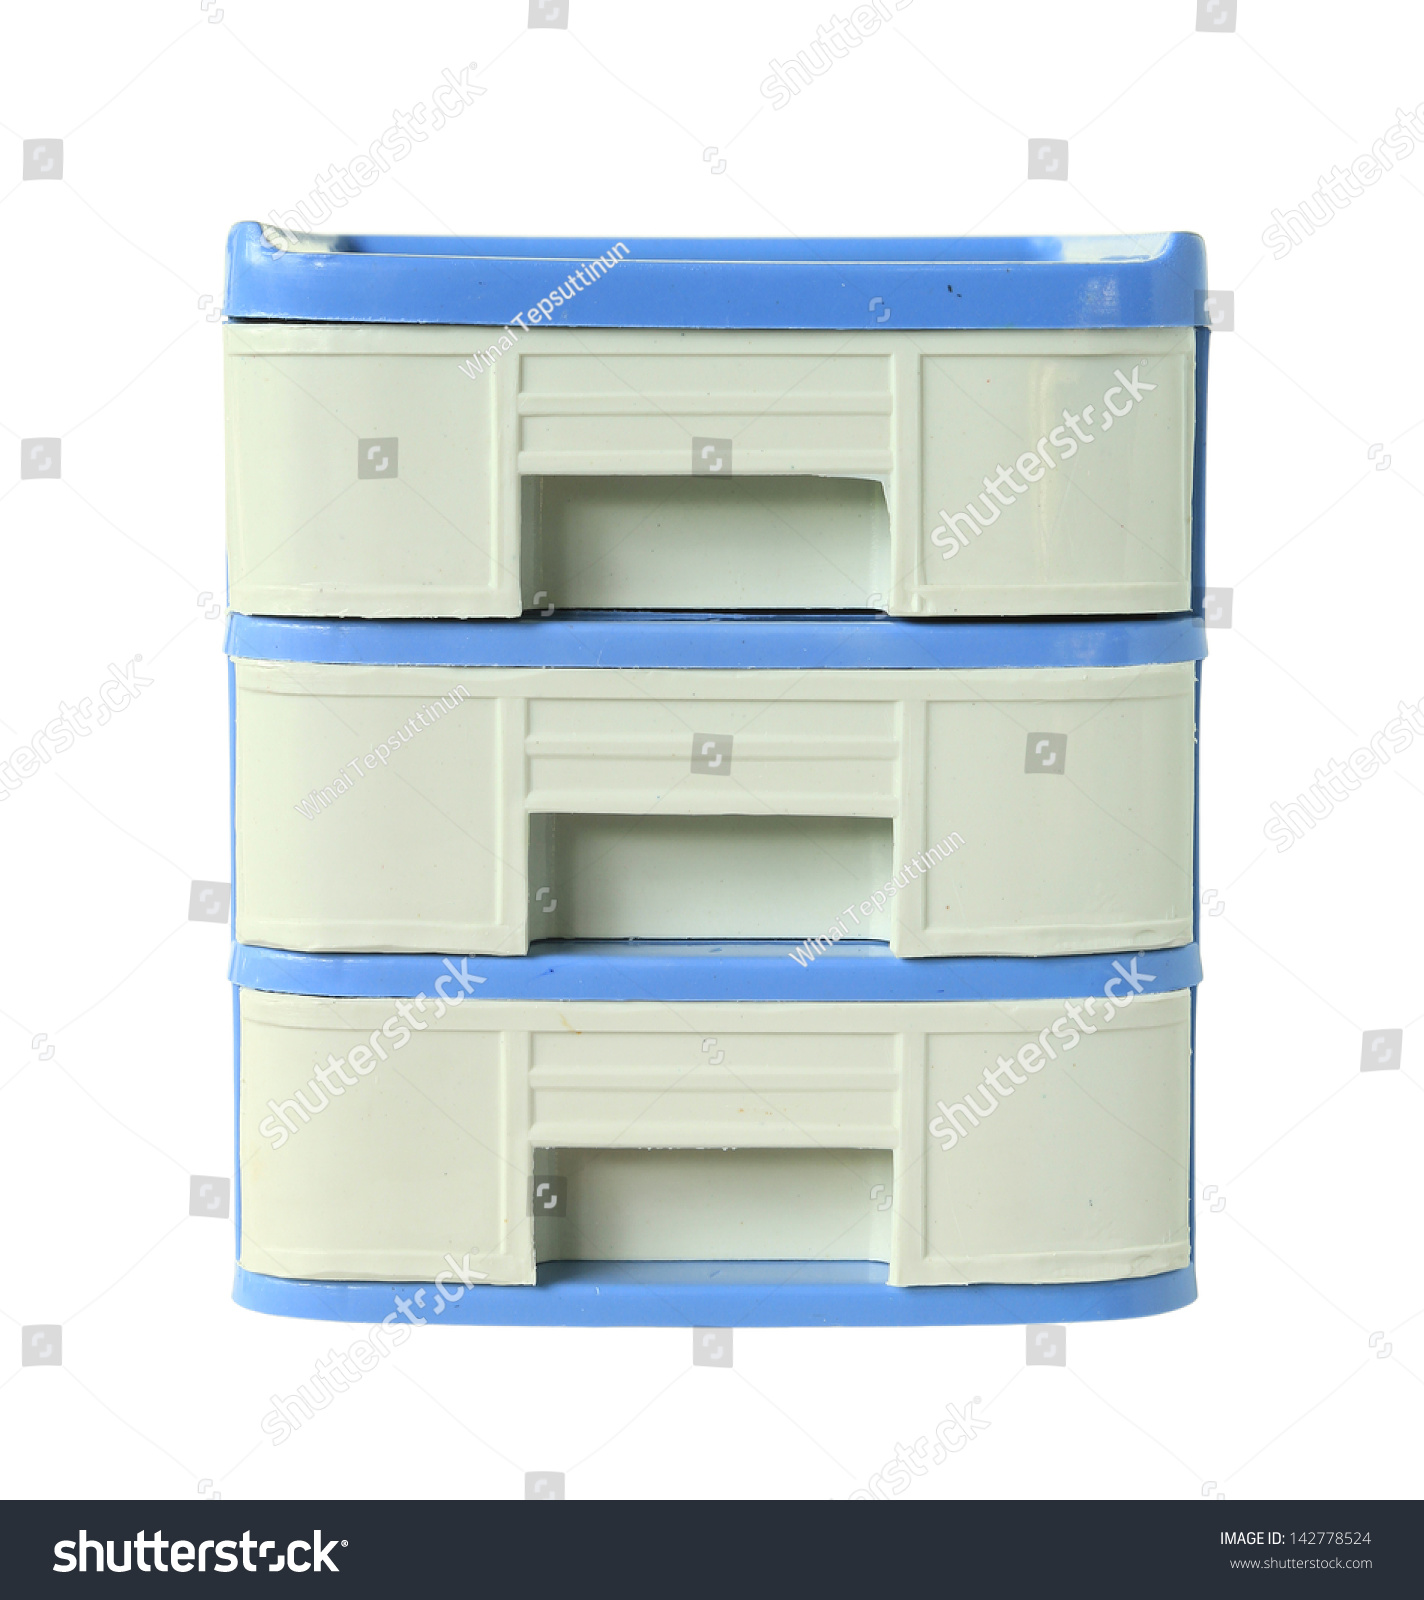 gb out units ikea pulled too office cabinet drawers storage furniture cabinets plastic unit home en helmer white castors stops from the on being products prevent drawer